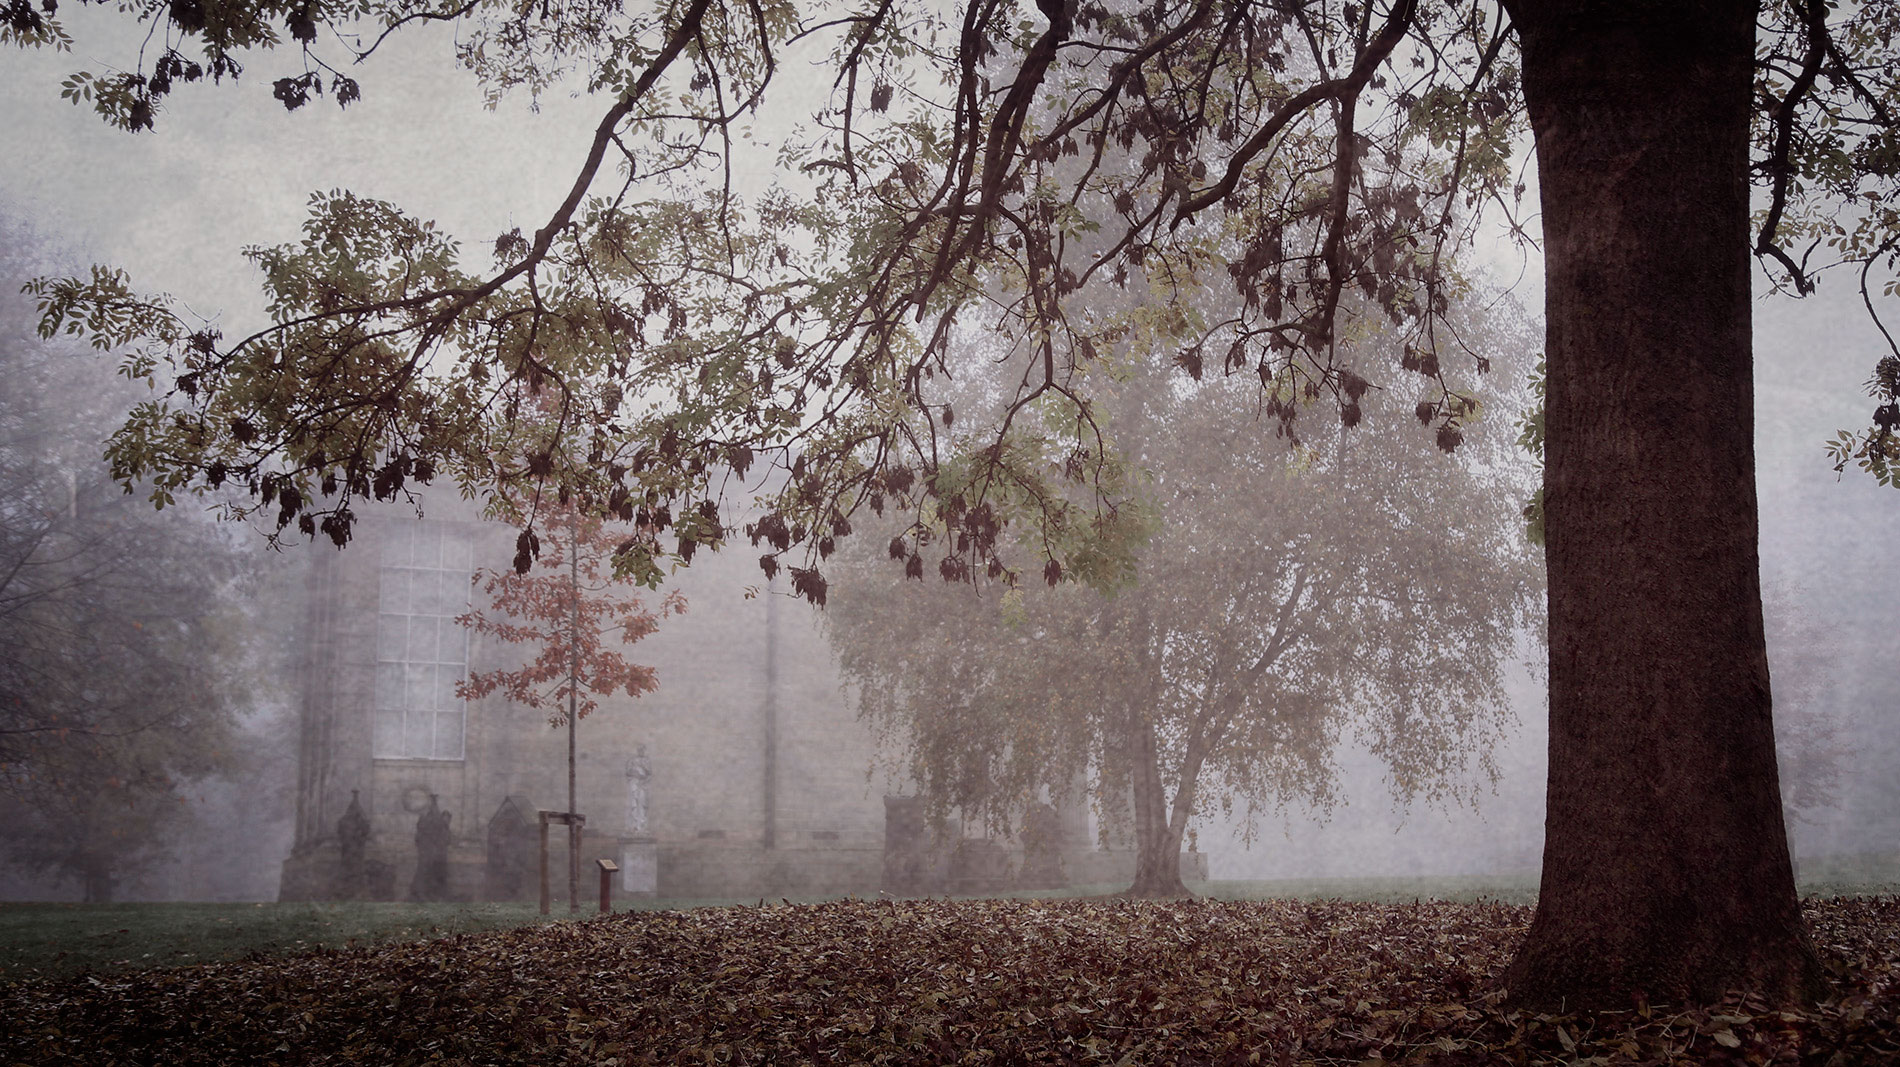 leeds-cemetery-foggy-landscape-saturation